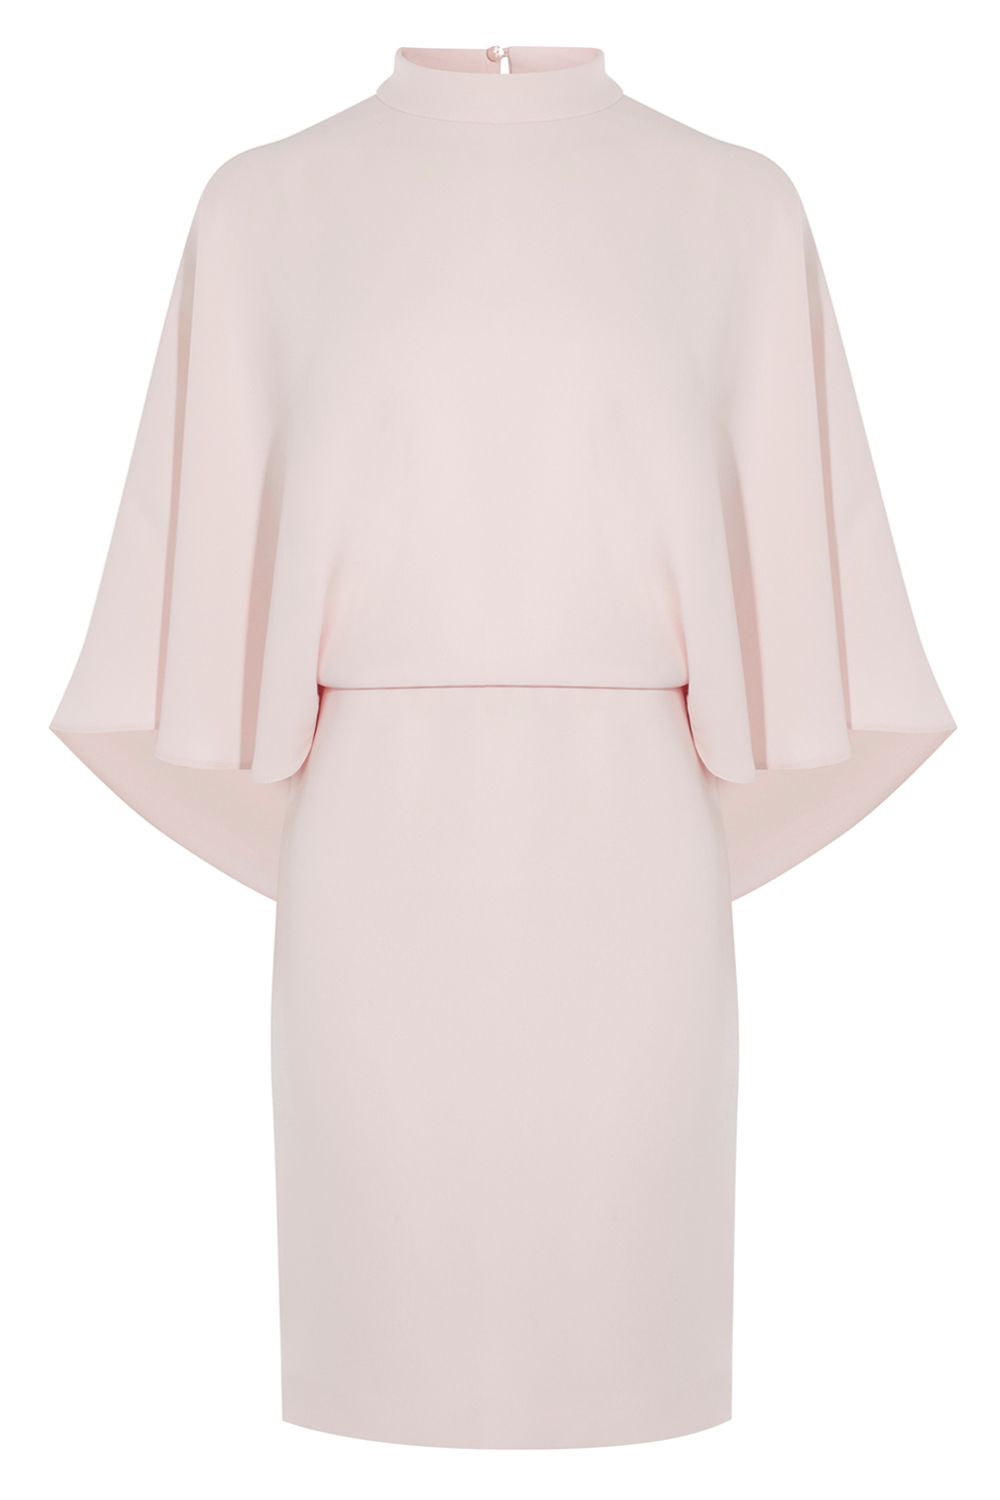 Coast Blake Crepe Dress, Pink